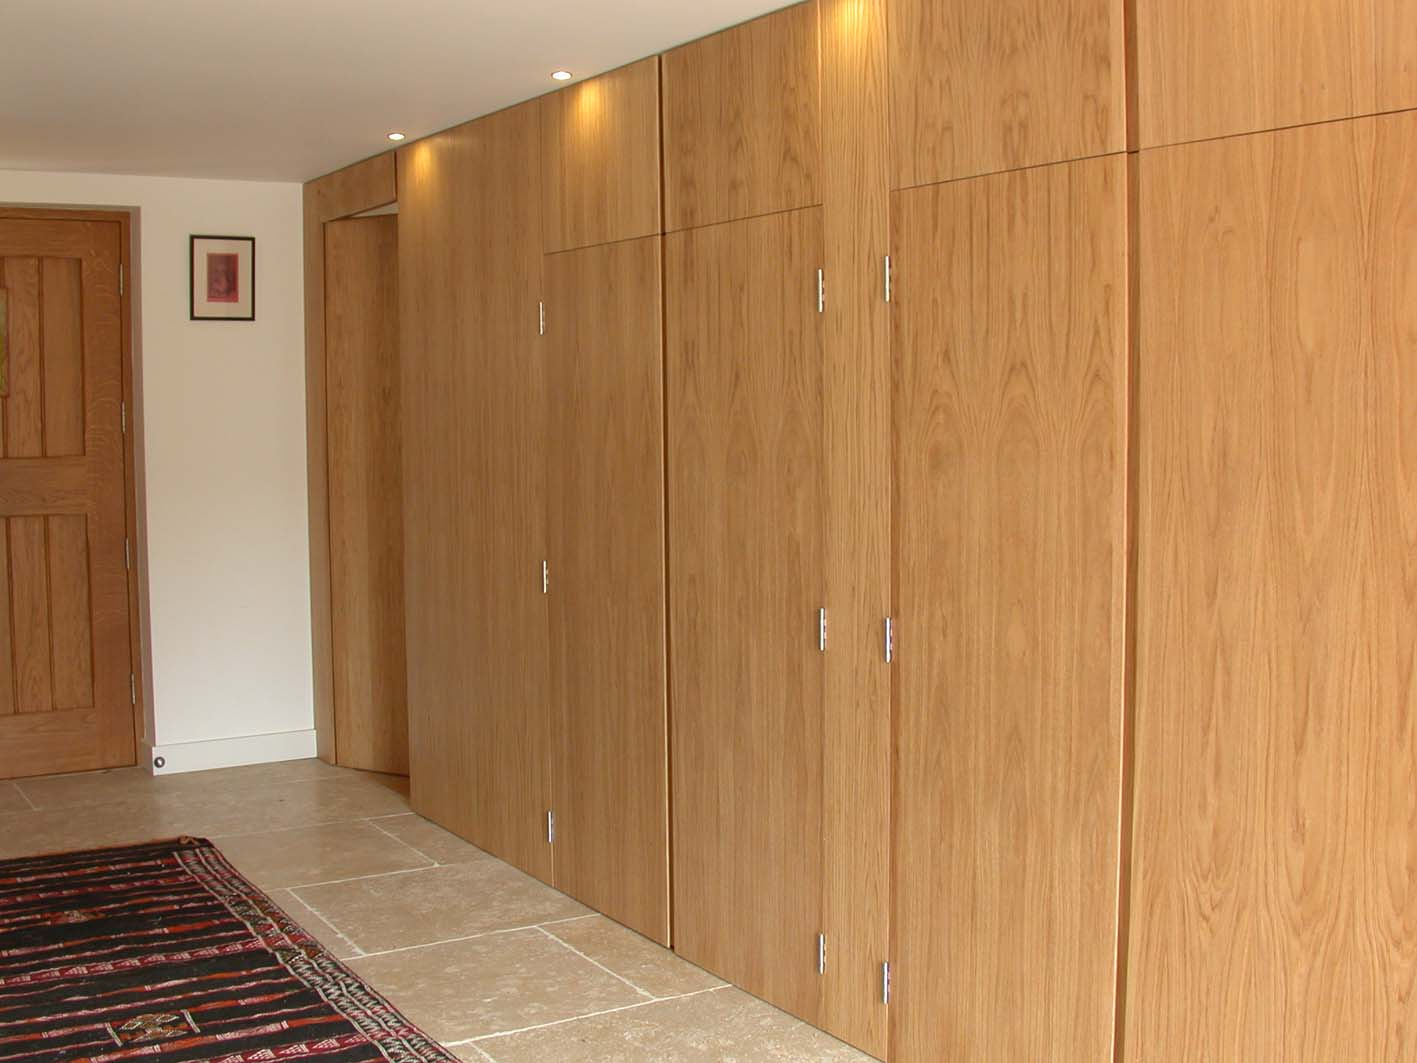 Oak wall and doors